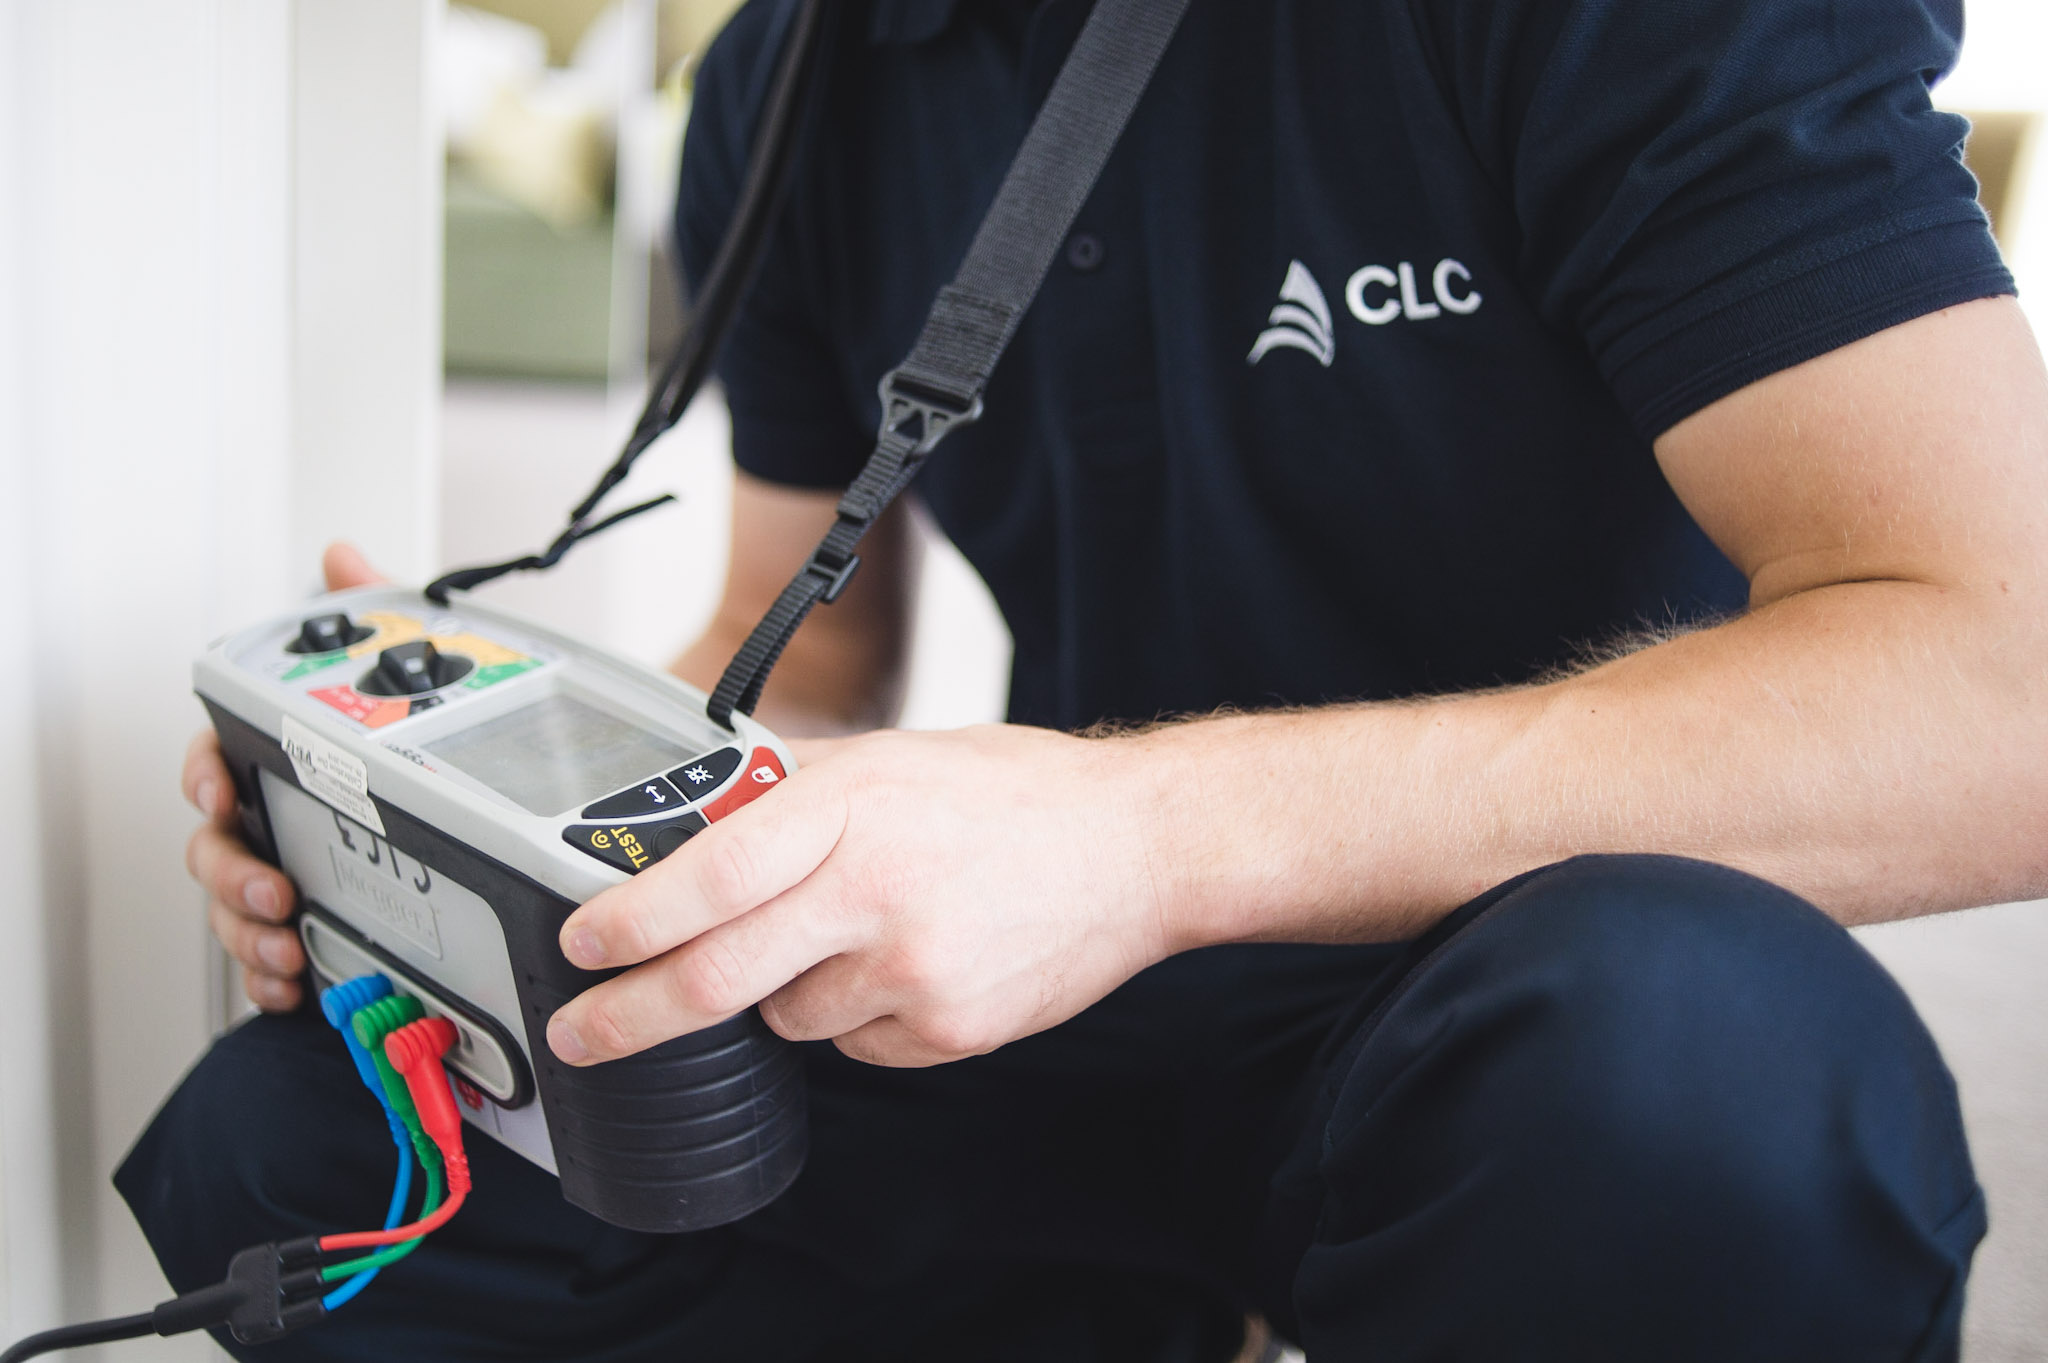 CLC worker holding electrical equipment